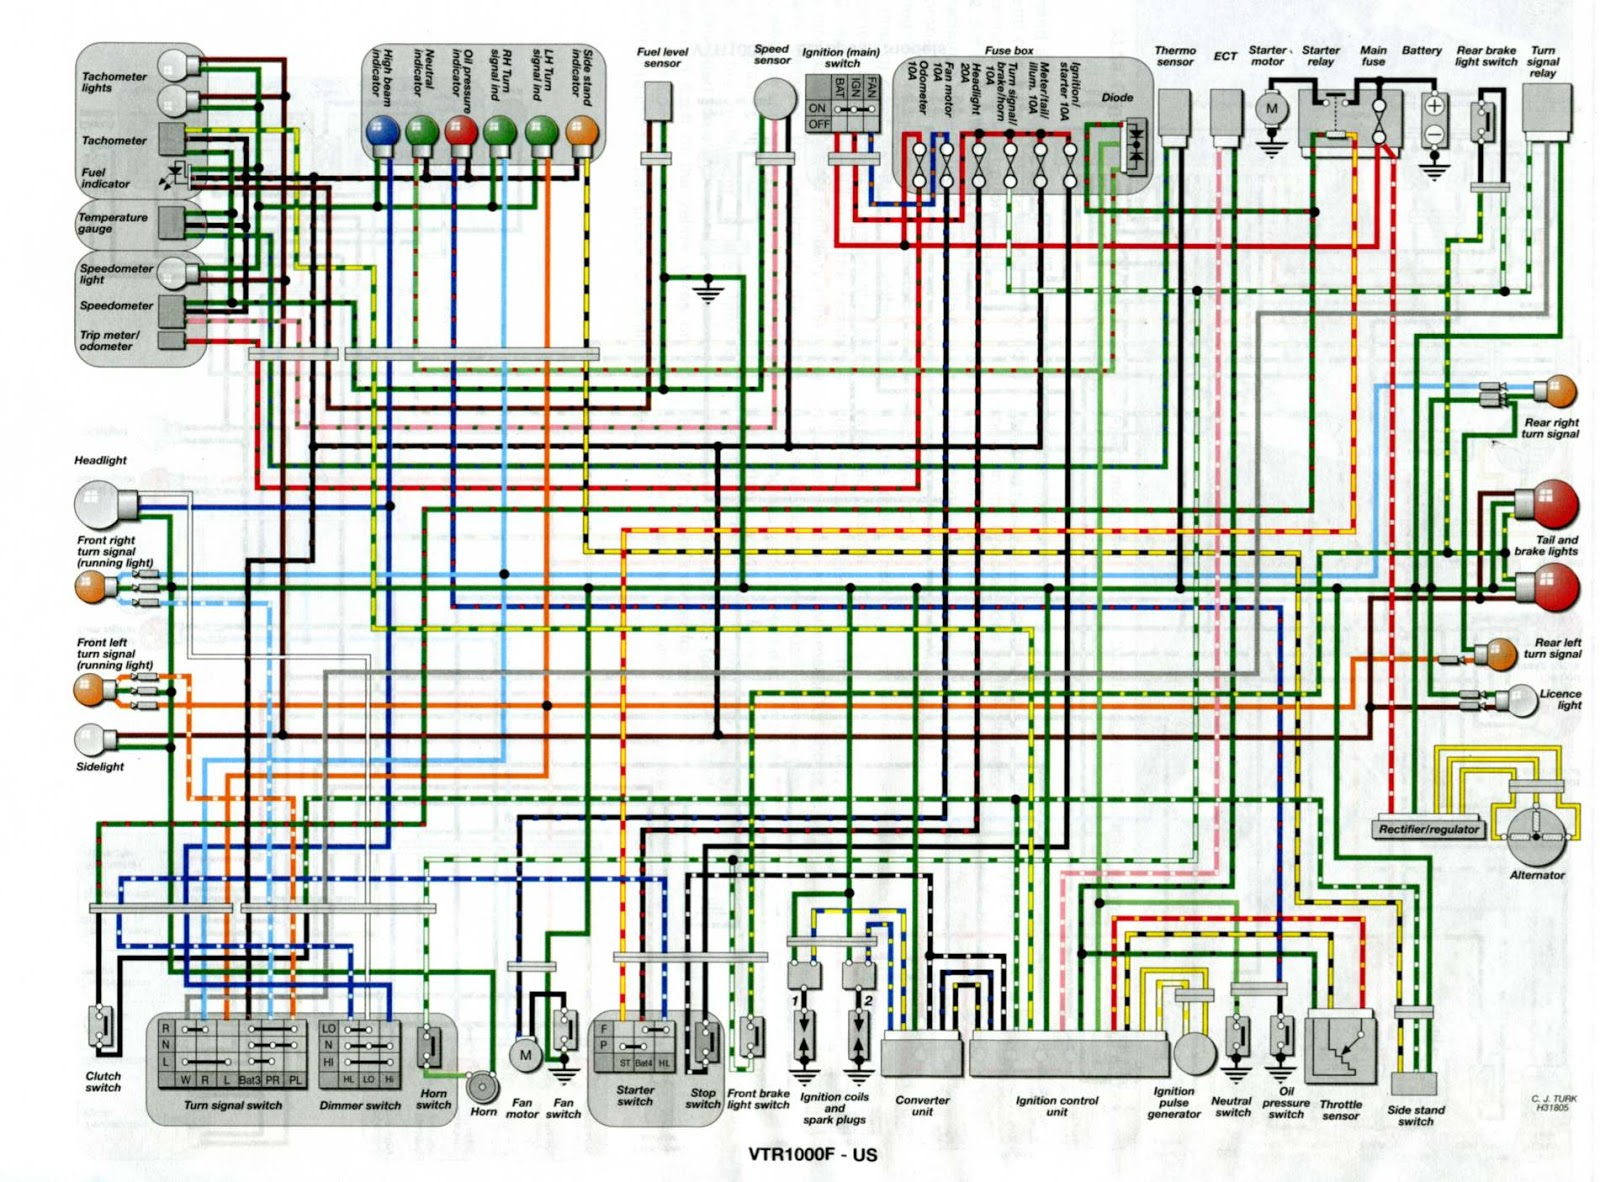 2004 cbr 1000 wire diagram wiring diagram database2004 cbr 1000 wire diagram wiring diagram schema blog 2004 cbr 1000 wire diagram